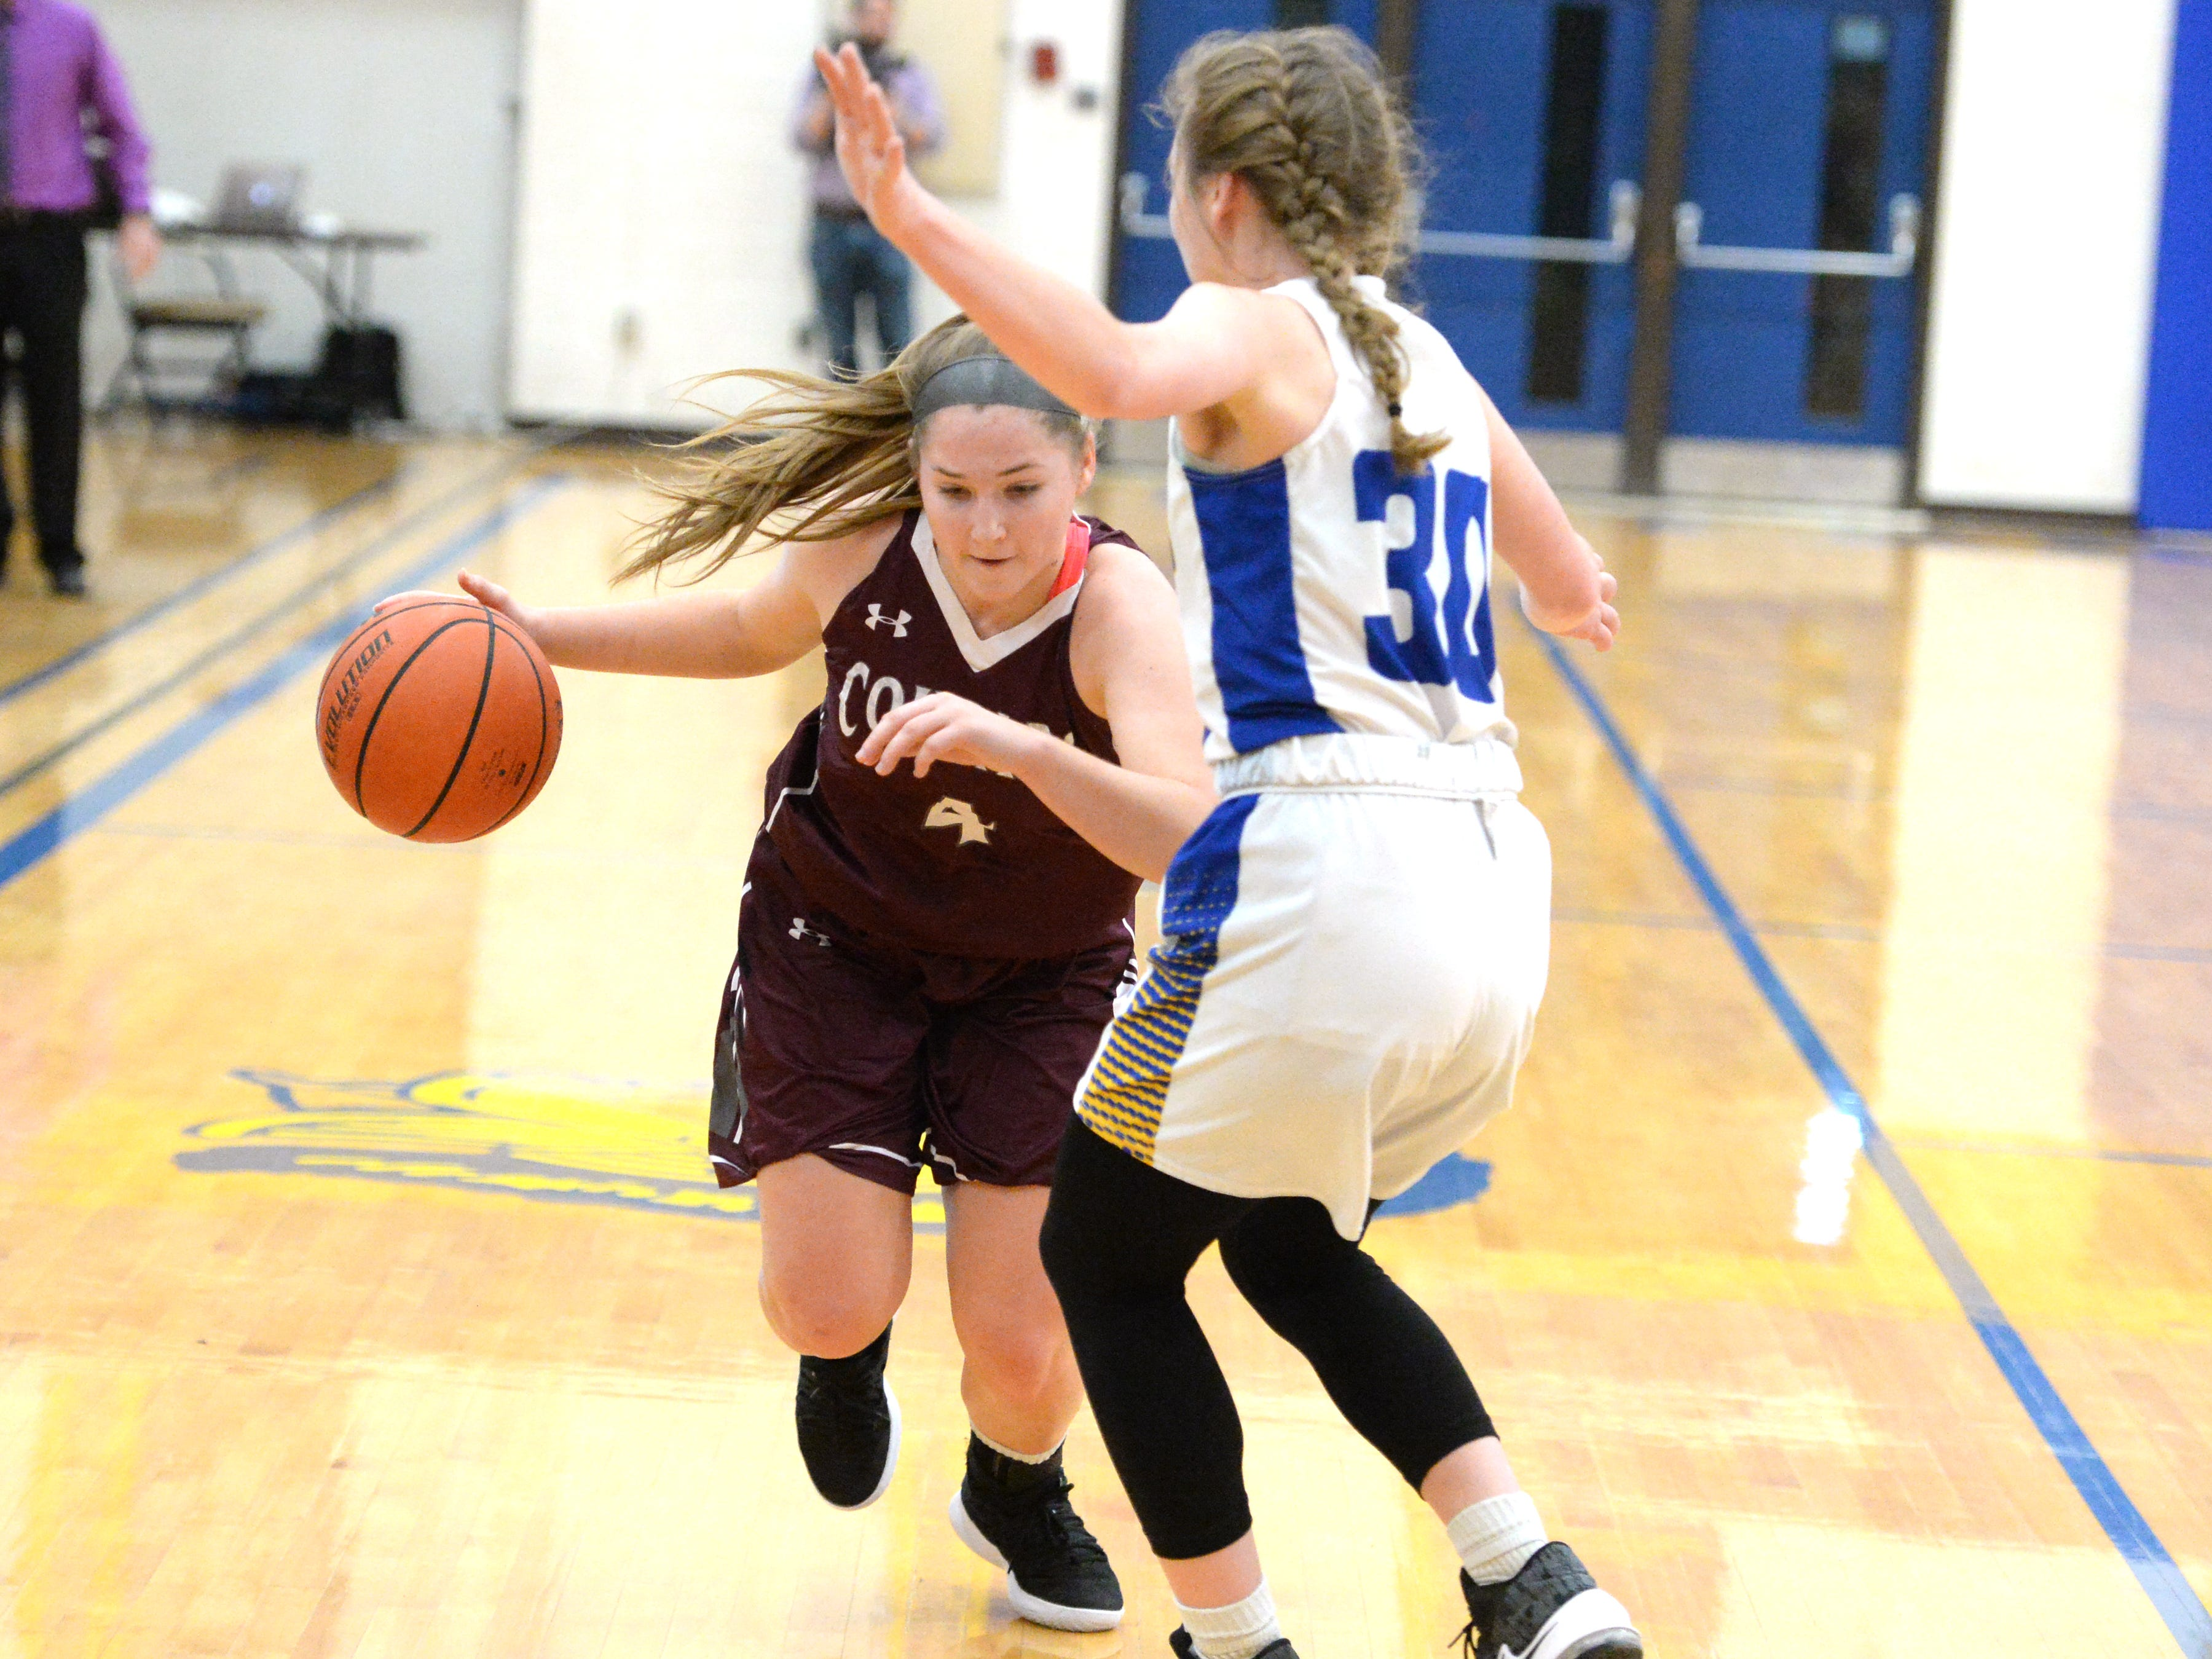 Stuarts Draft's Maggie Sorrels attempts to drive around Western Albemarle's Elisabeth Coffman Saturday at the Play for Preemies Showcase at Western Albemarle High School.